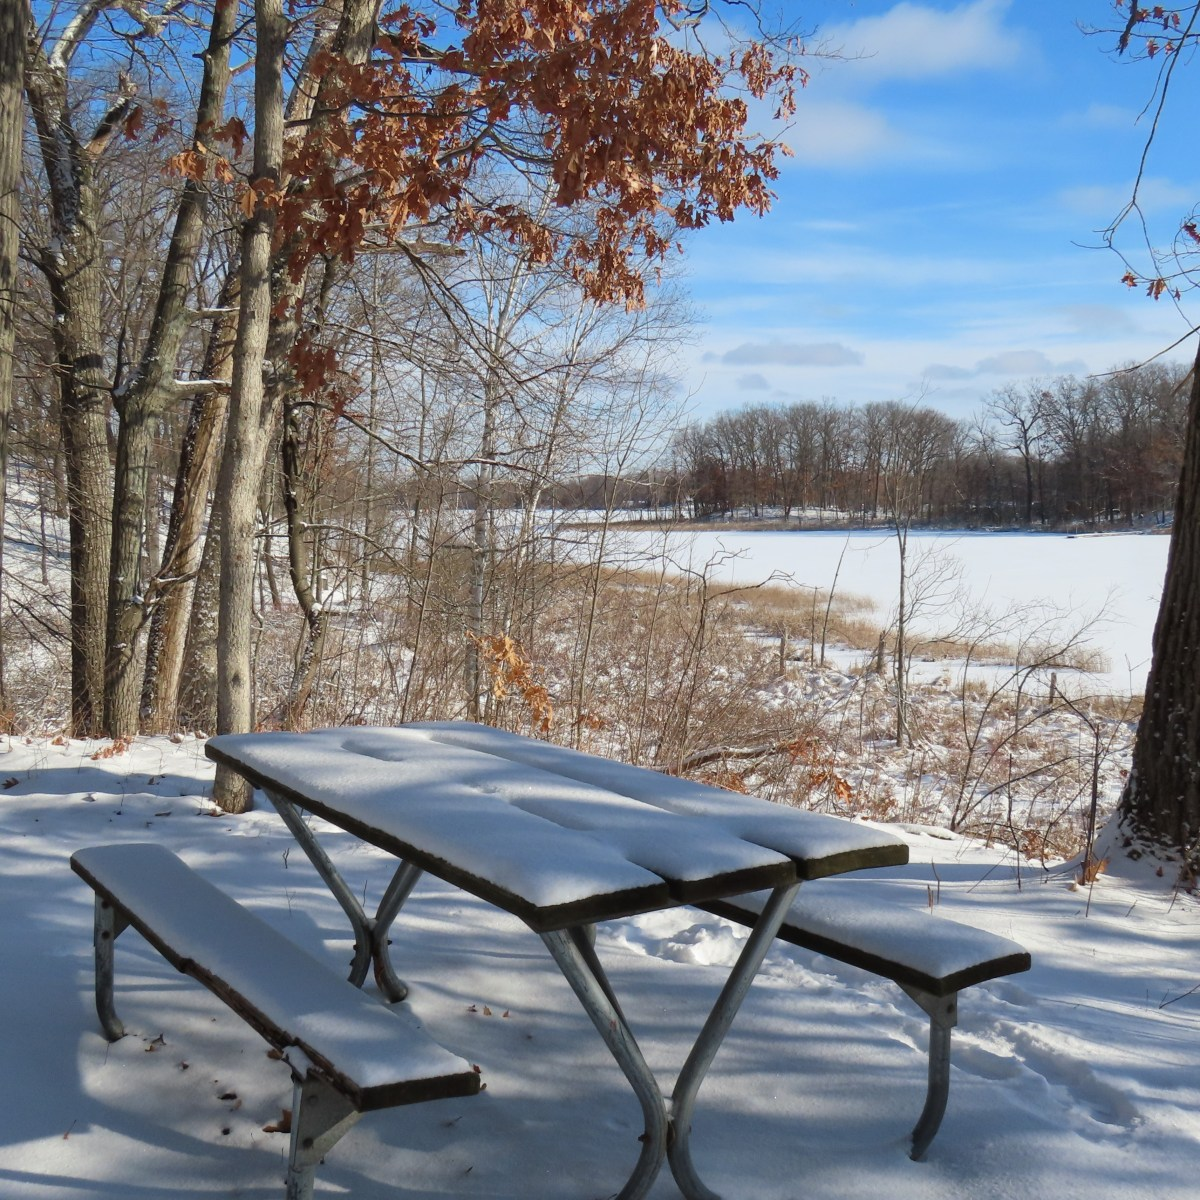 A wooden picnic table covered with snow in the woods near a lake